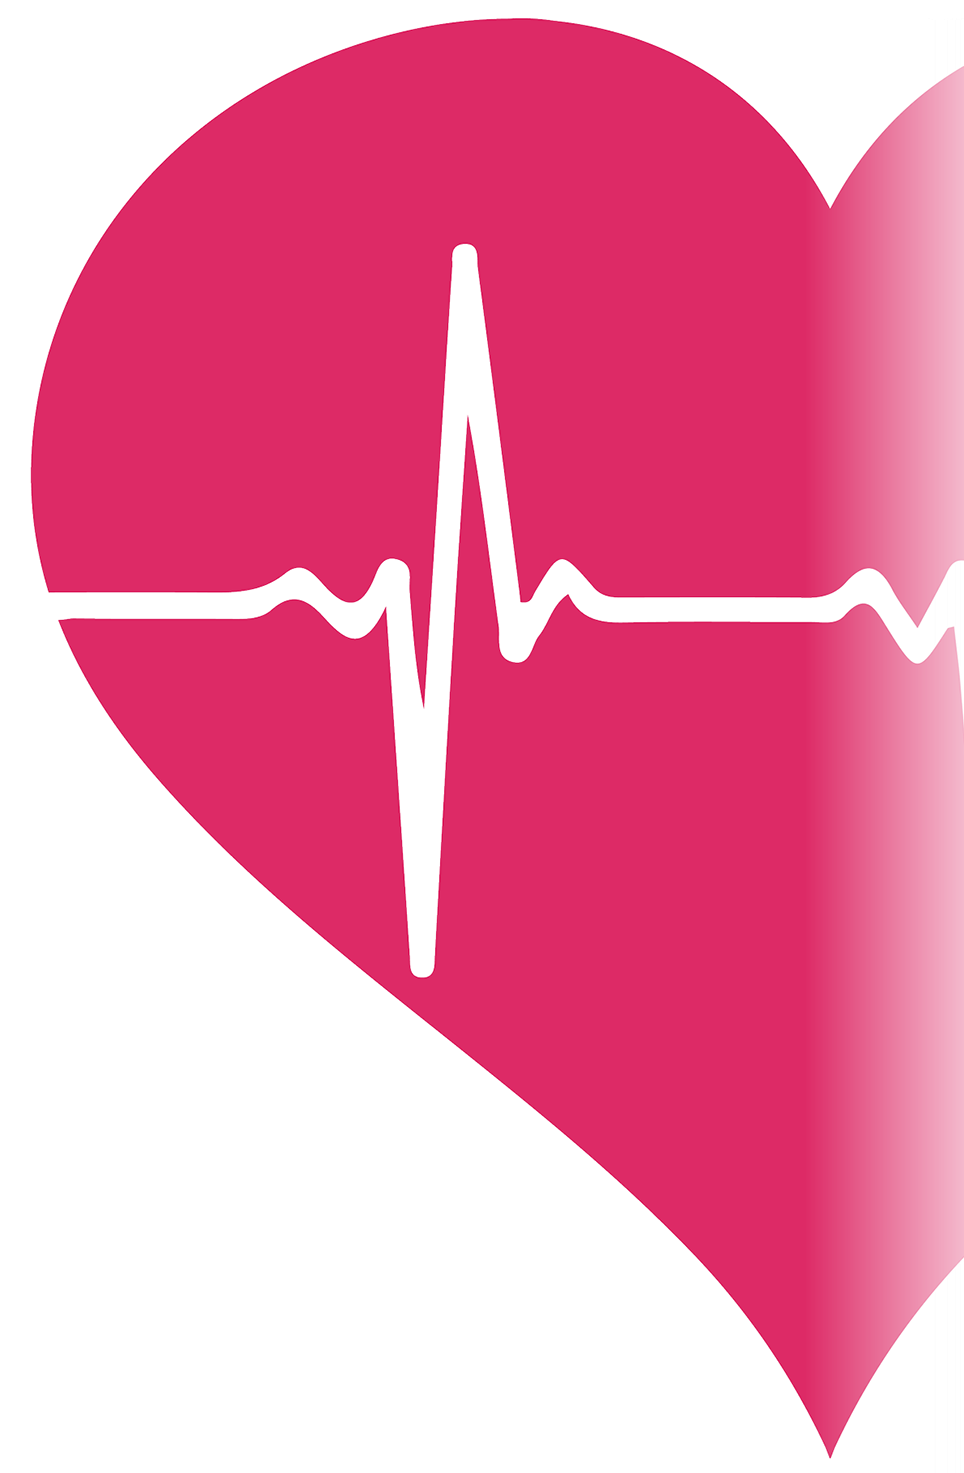 Heartbeat clipart sinus rhythm. Home am continental breakfast